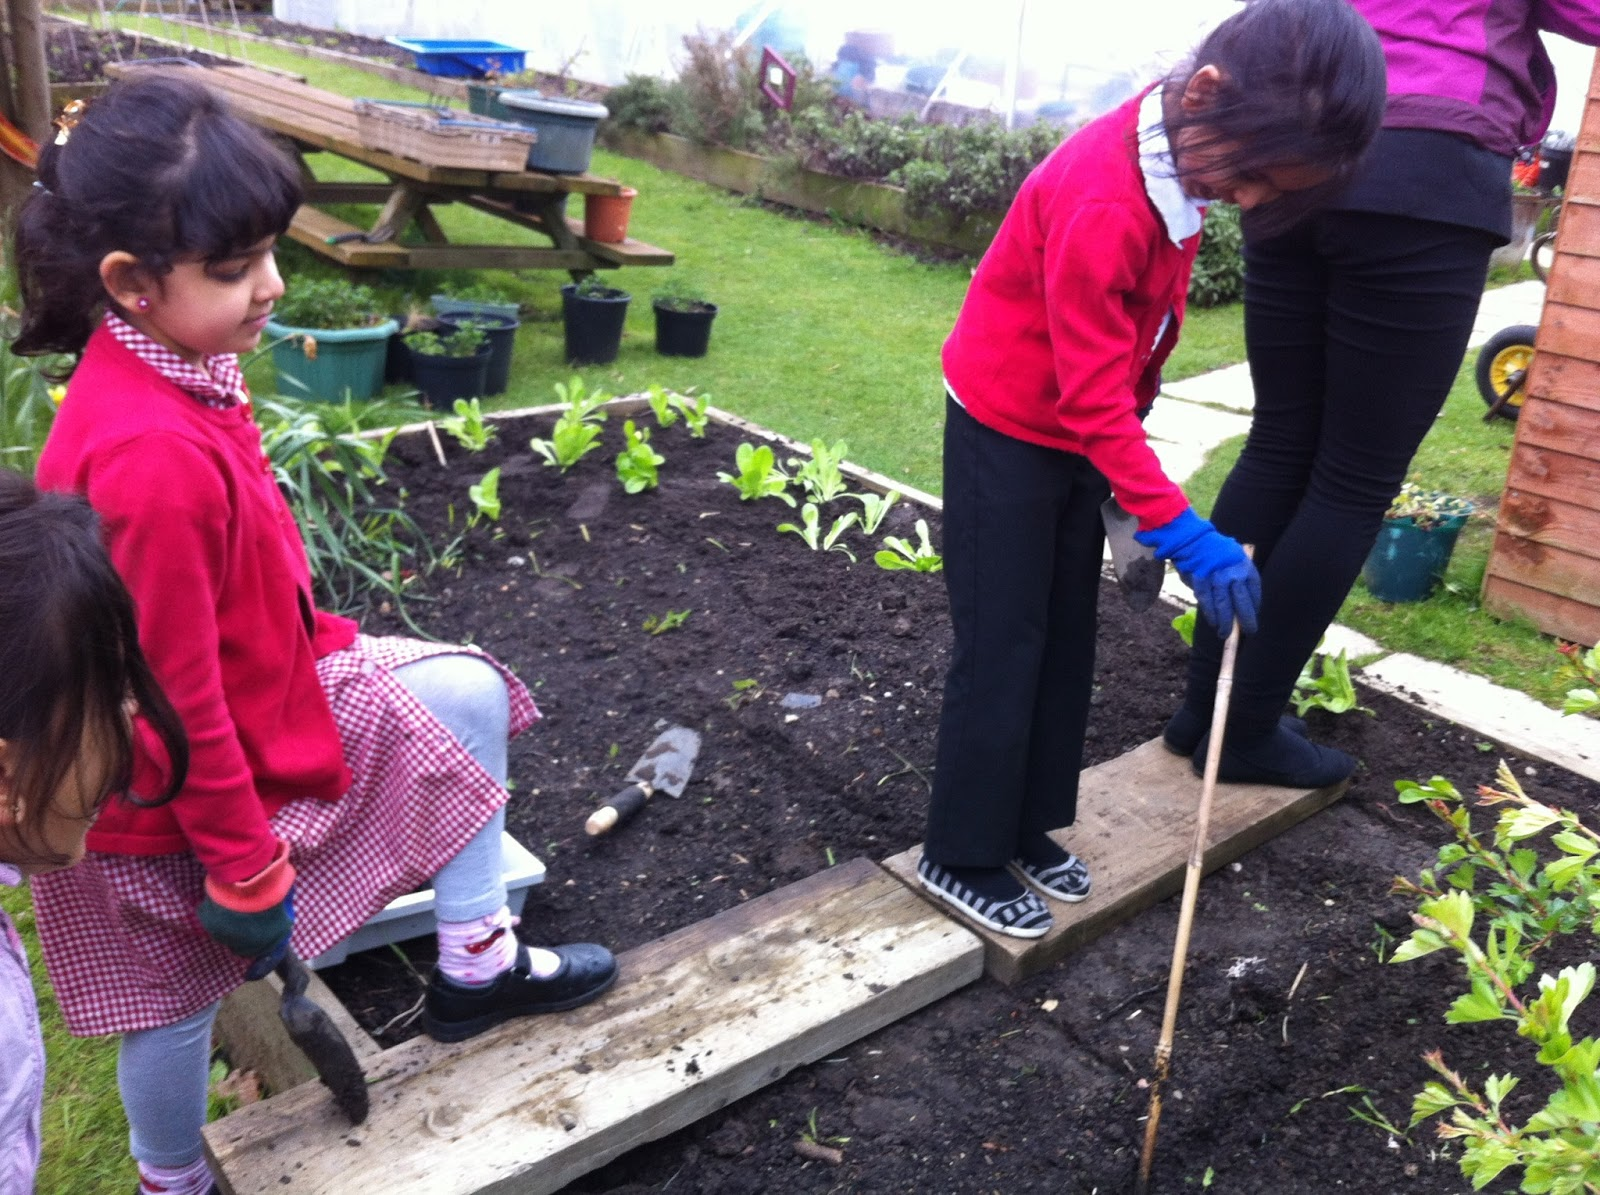 Welcome to Cookridge Primary School's Garden: Little Green